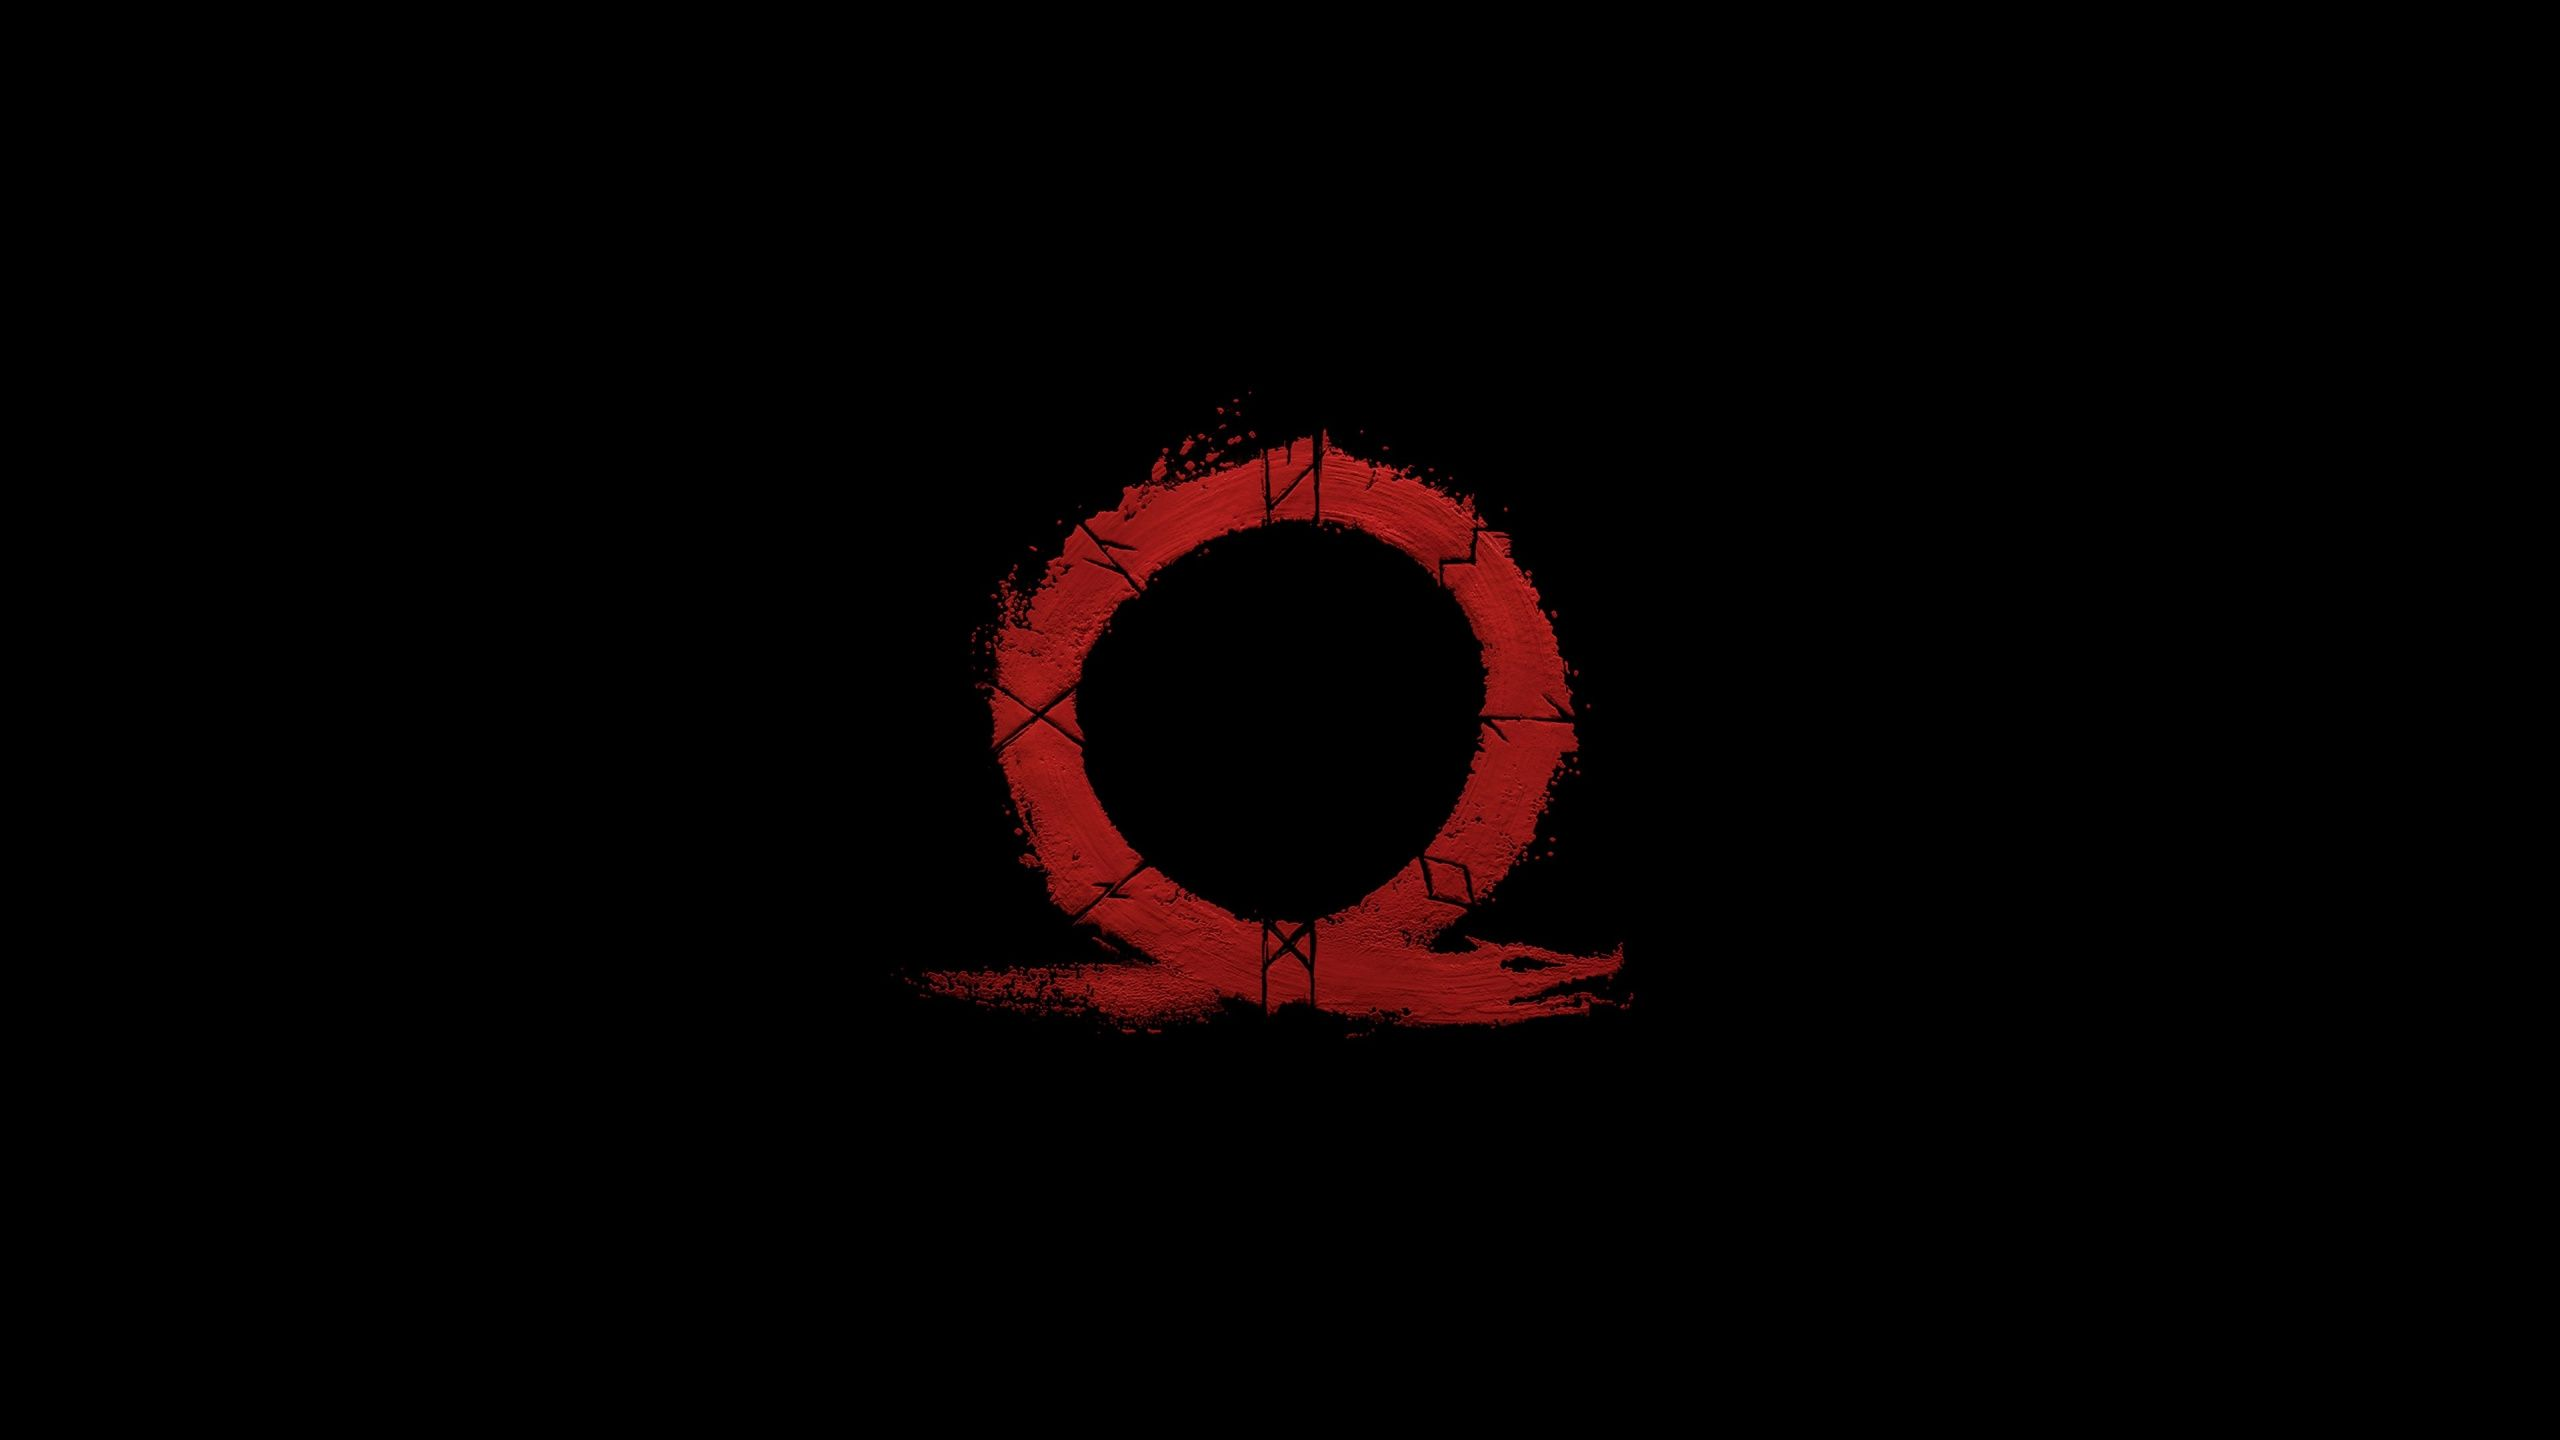 Download 2560x1440 Wallpaper God Of War Omega Logo Video Game Minimal Dual Wide Widescreen 16 9 Widescreen God Of War Music Wallpaper Simple Backgrounds